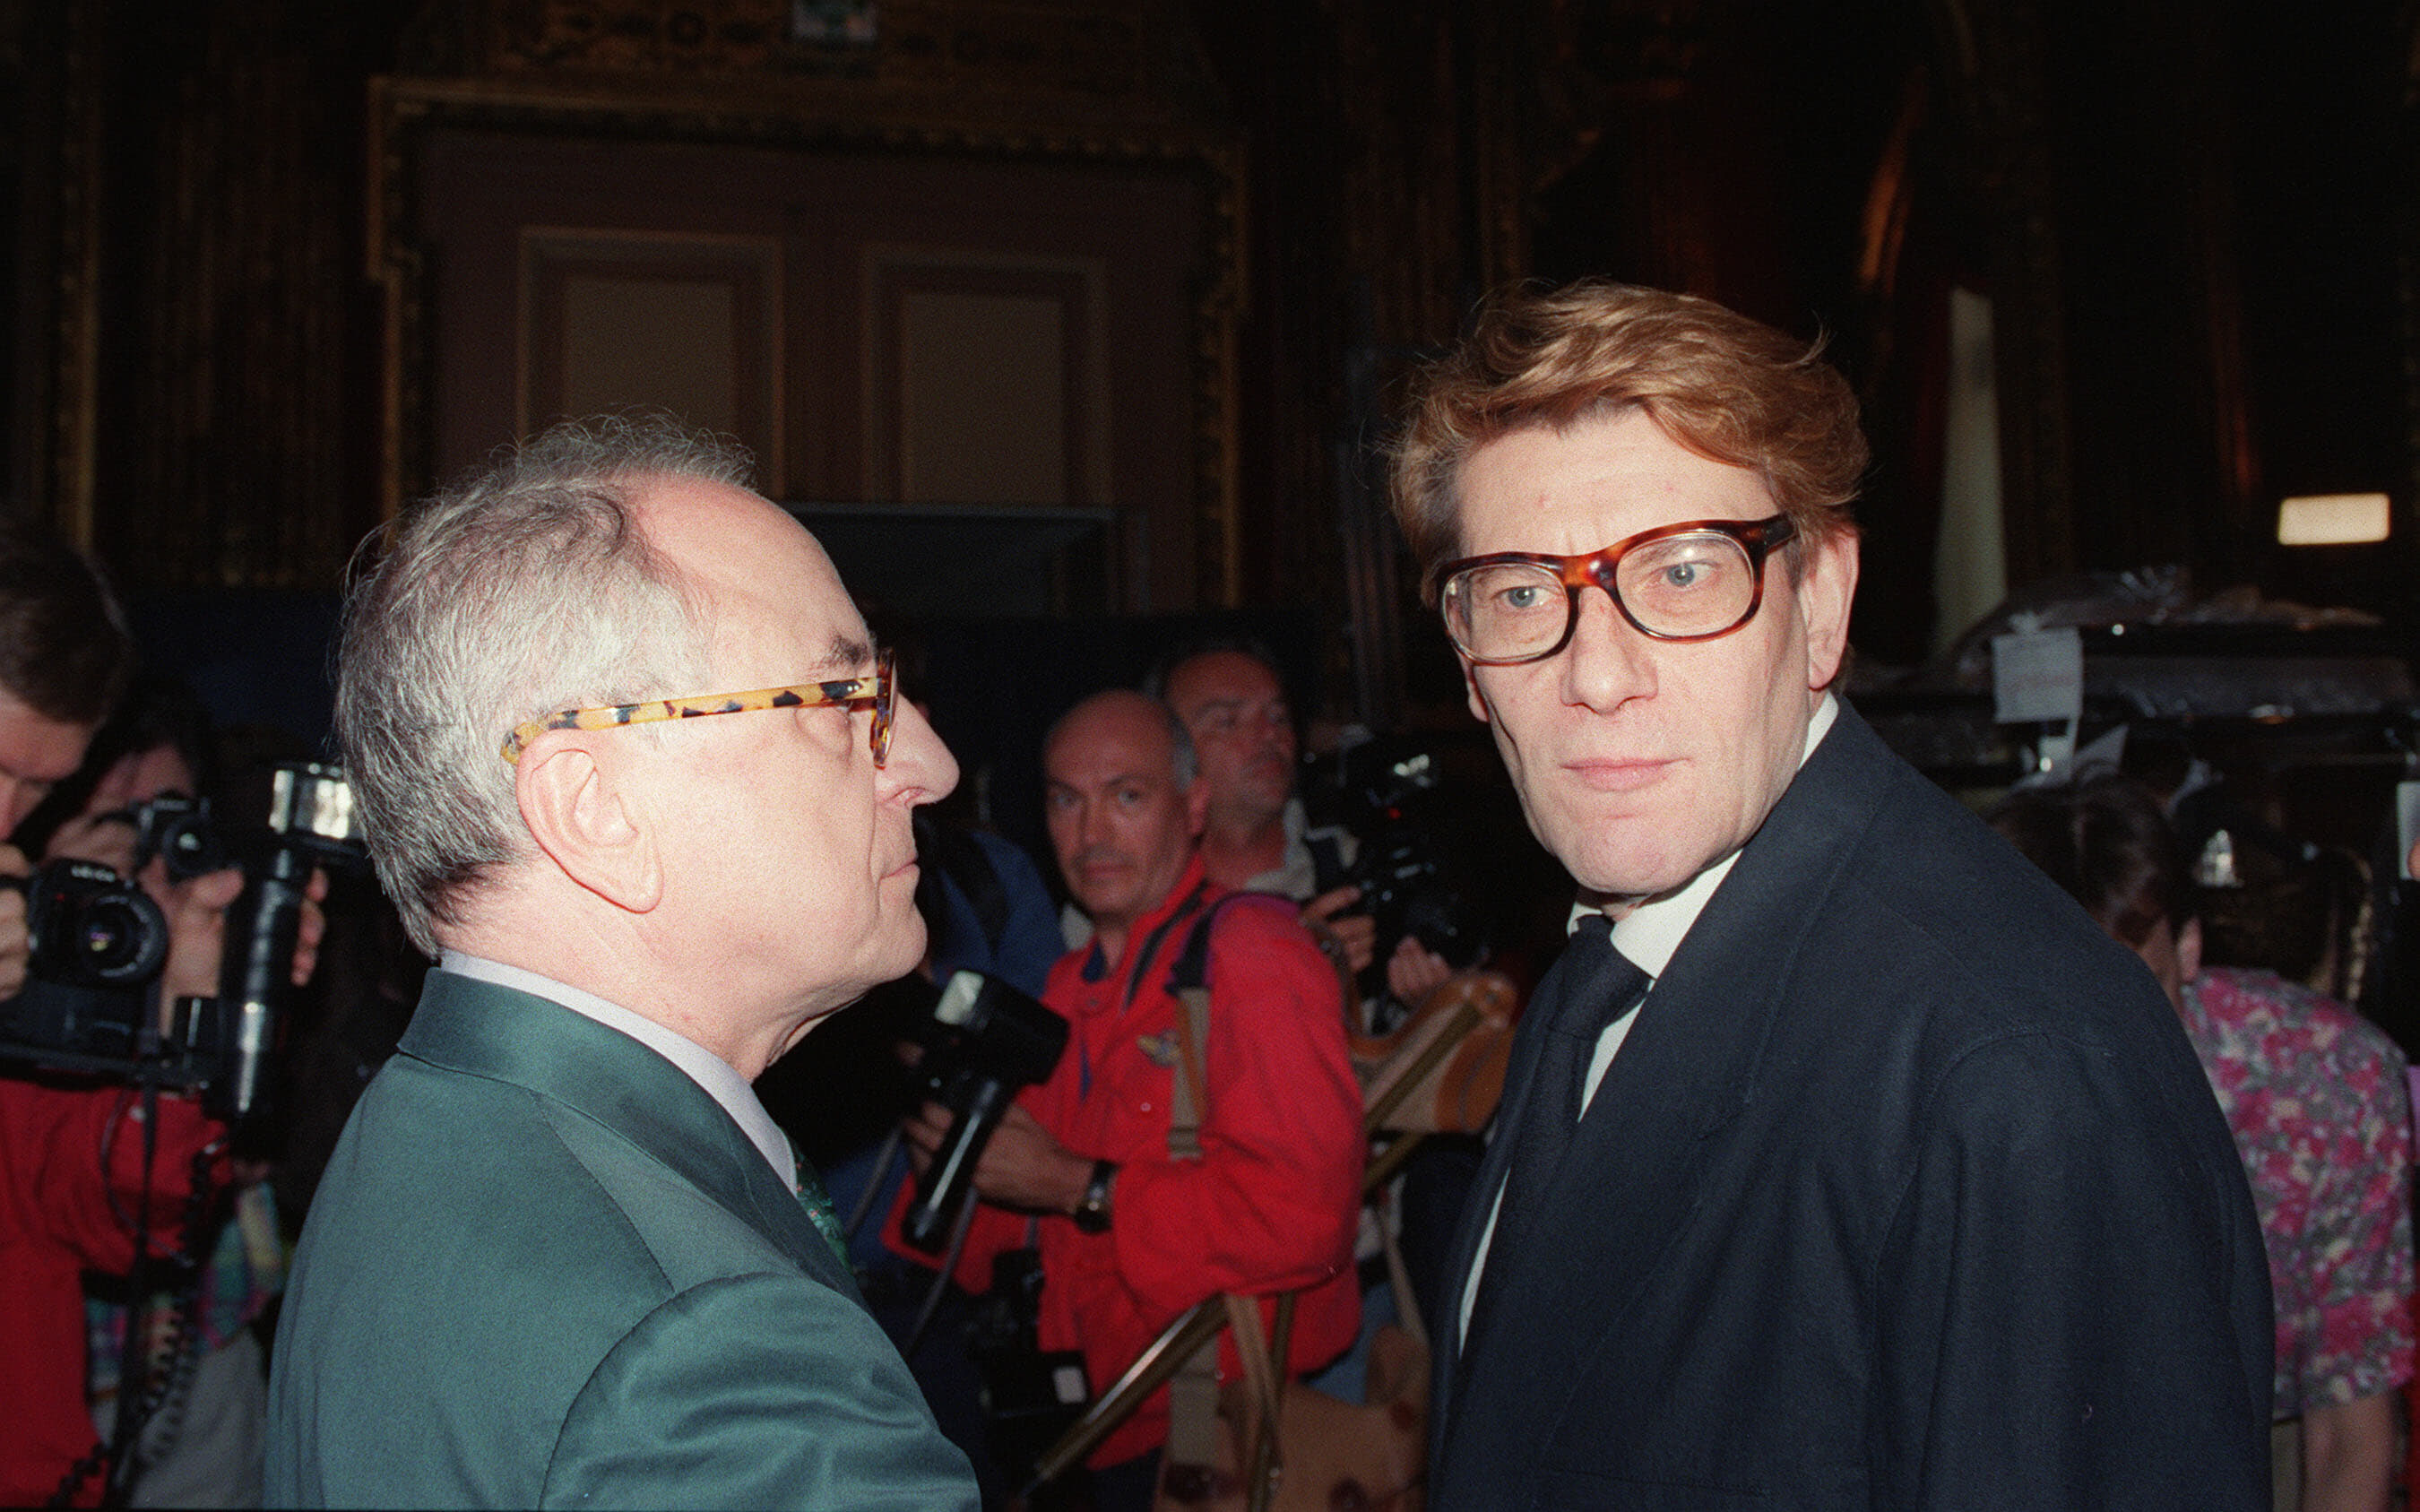 Pierre Bergé and Yves Saint Laurent in 1992